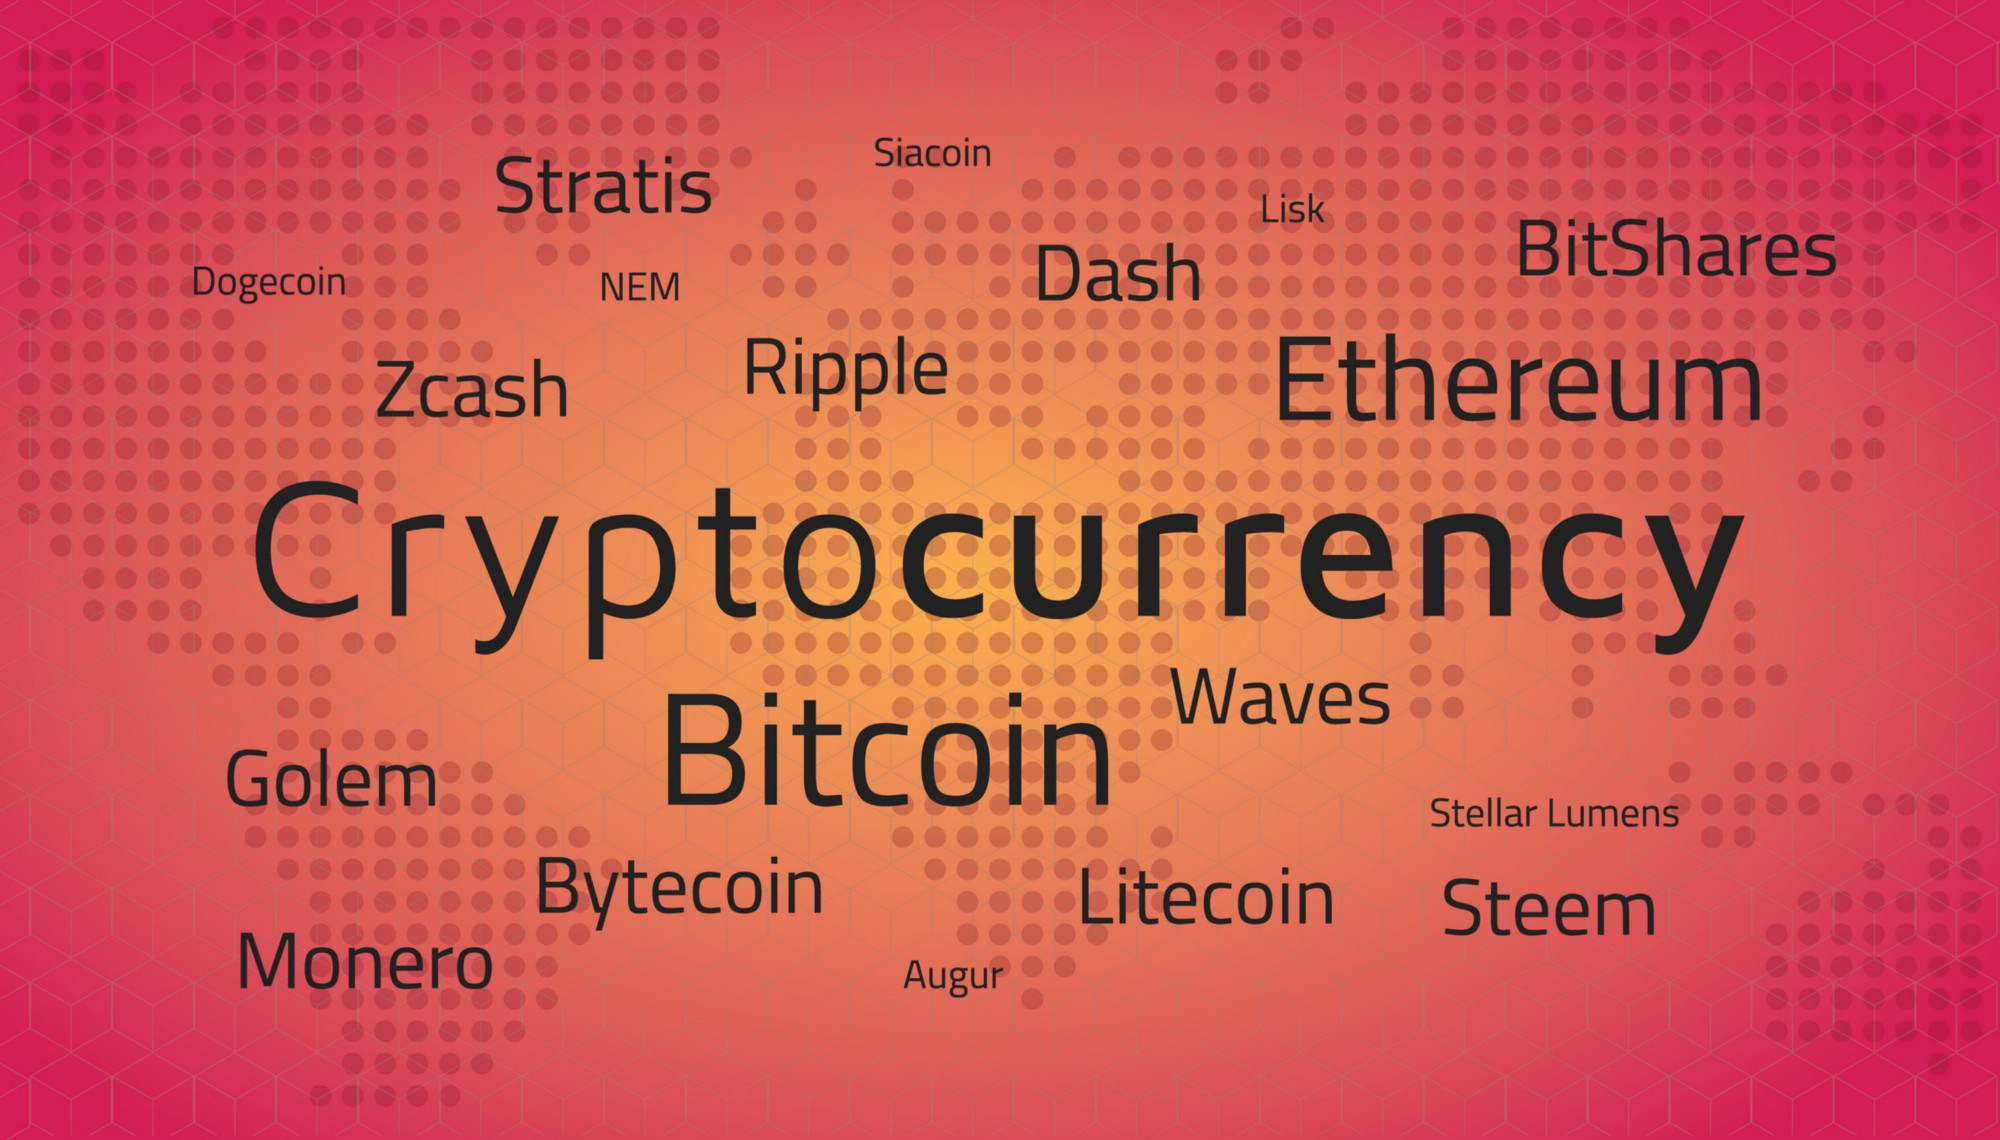 How popular cryptocurrencies are in the US